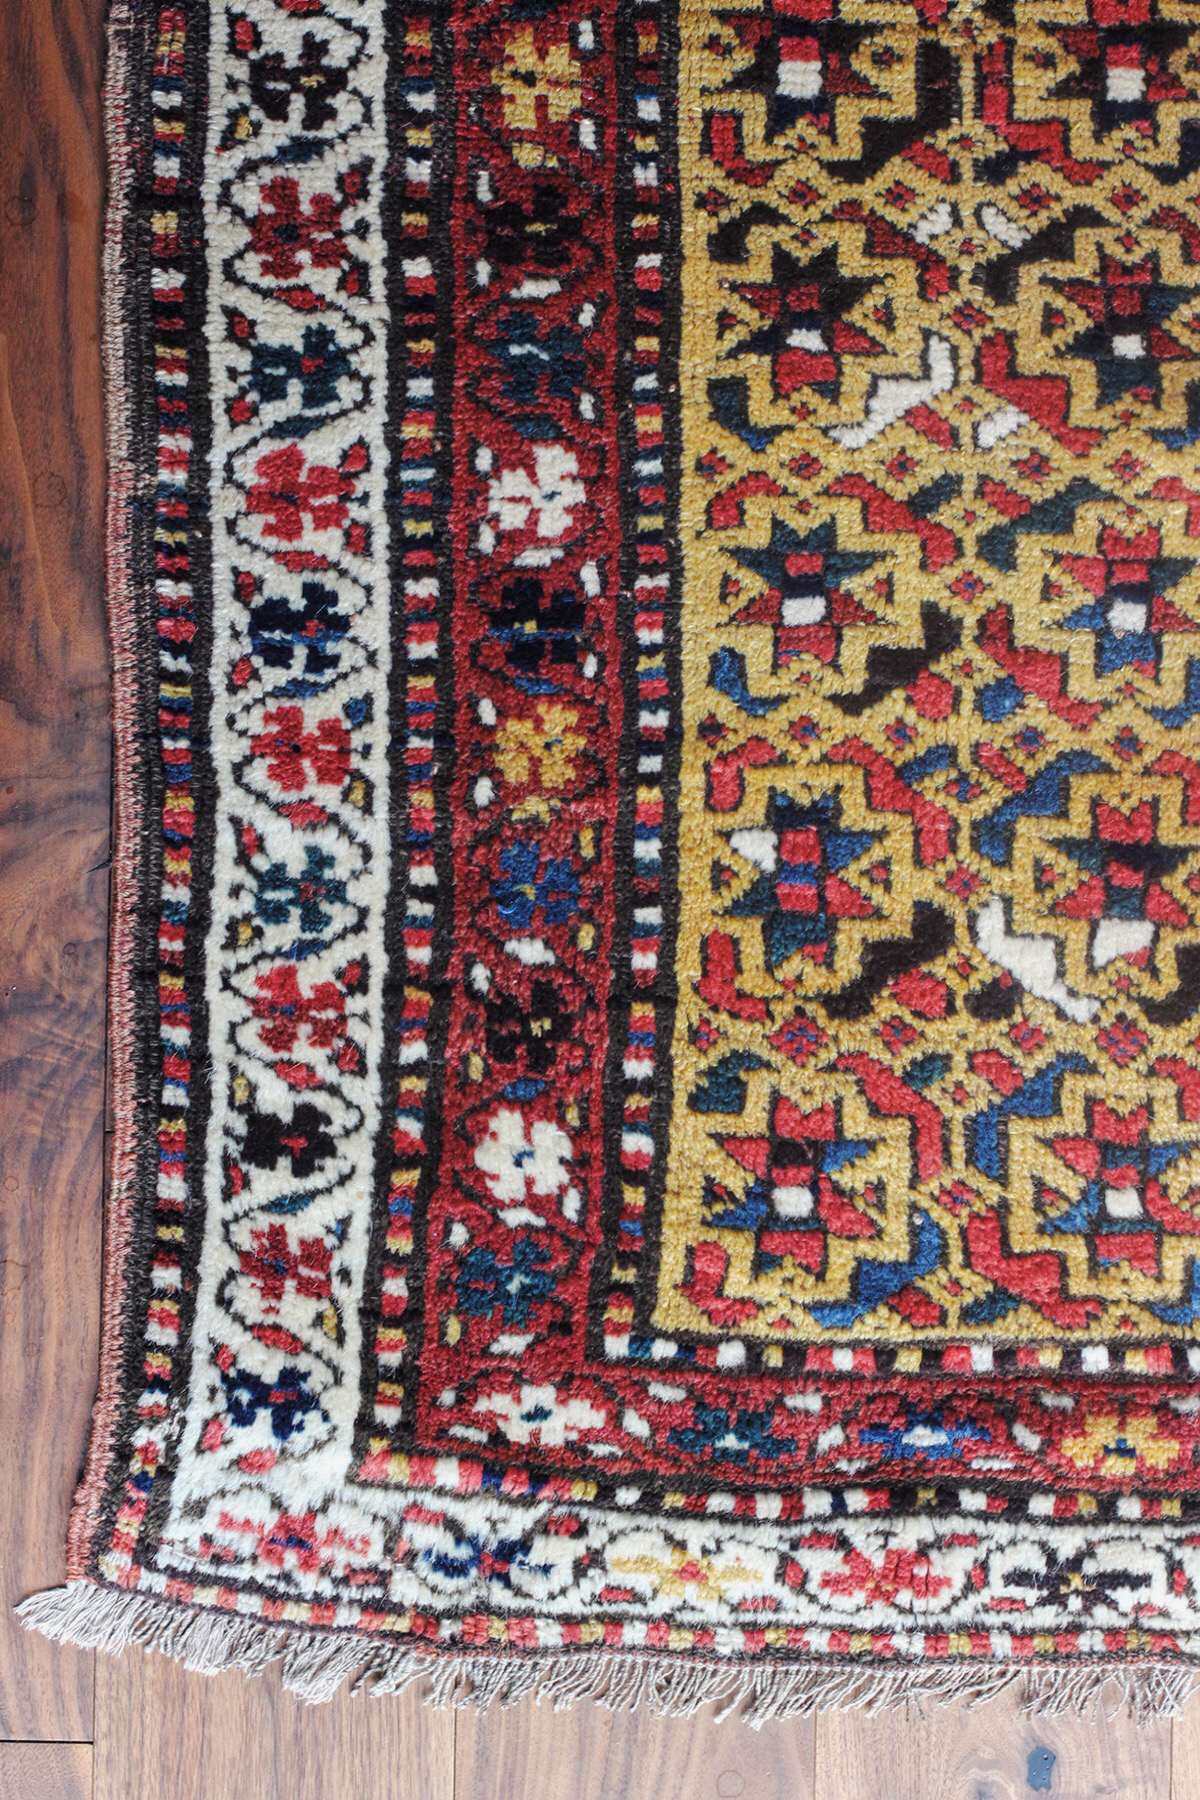 Can You Explain Why Wear And Tear Is Okay When Buying An Antique Rug? We  Like To Call U201cwear And Tearu201d Pile That Has Receded. An Antique Rug Begins  As A Rug ...